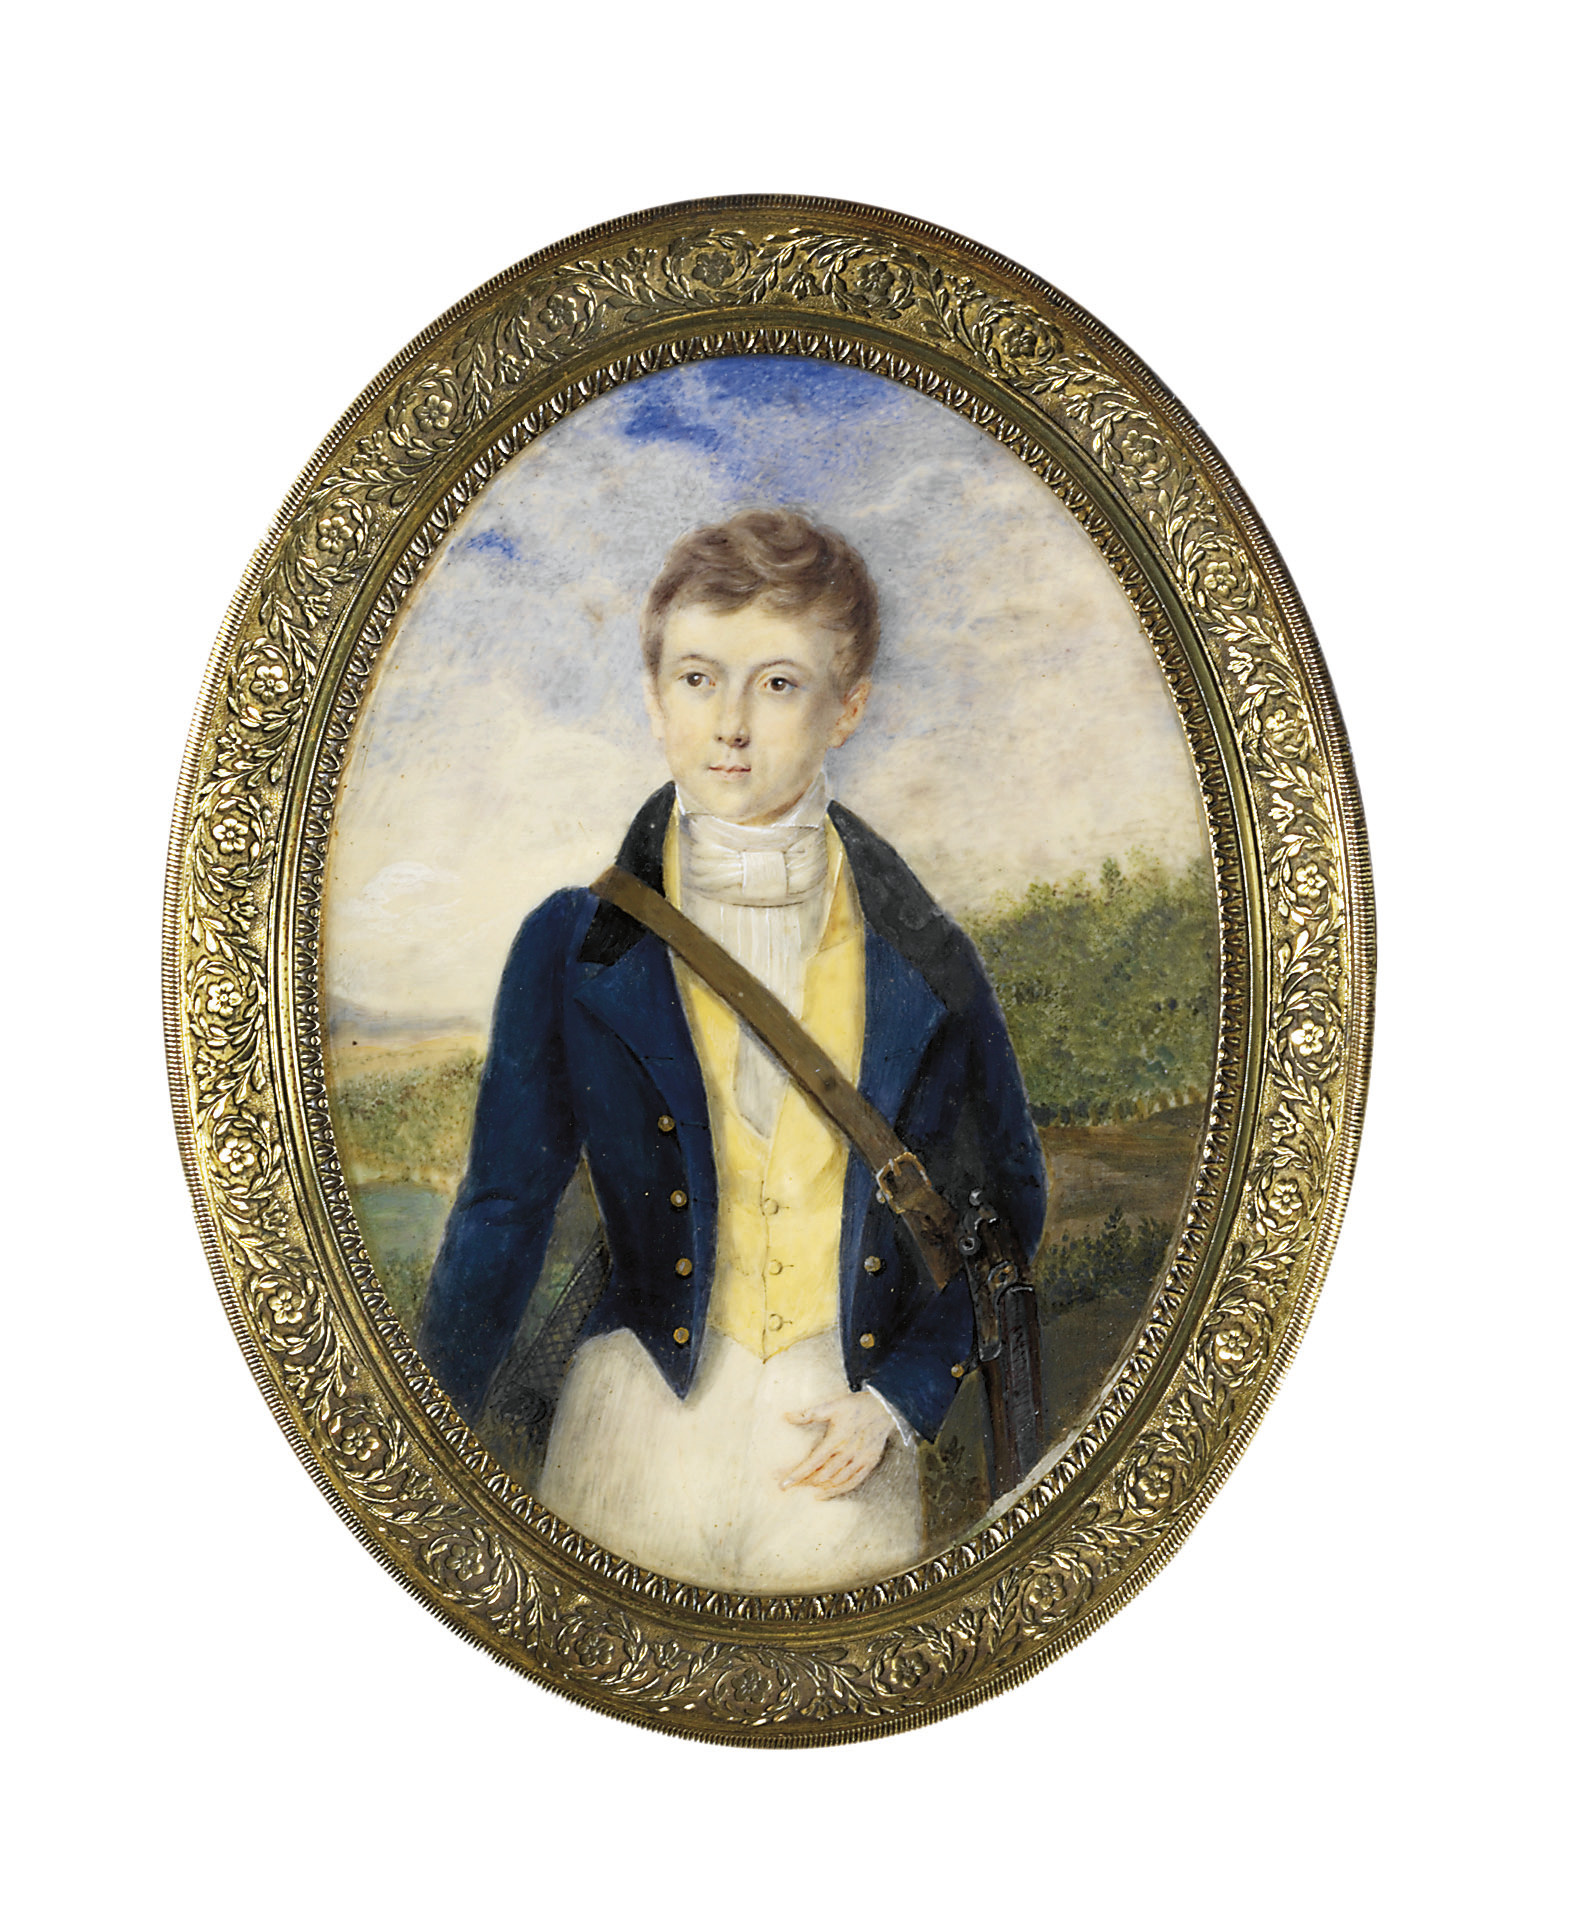 A boy, in blue coat with gold buttons, yellow waistcoat, white shirt and knotted cravat, a leather strap across his chest, a rifle under his left arm; landscape background